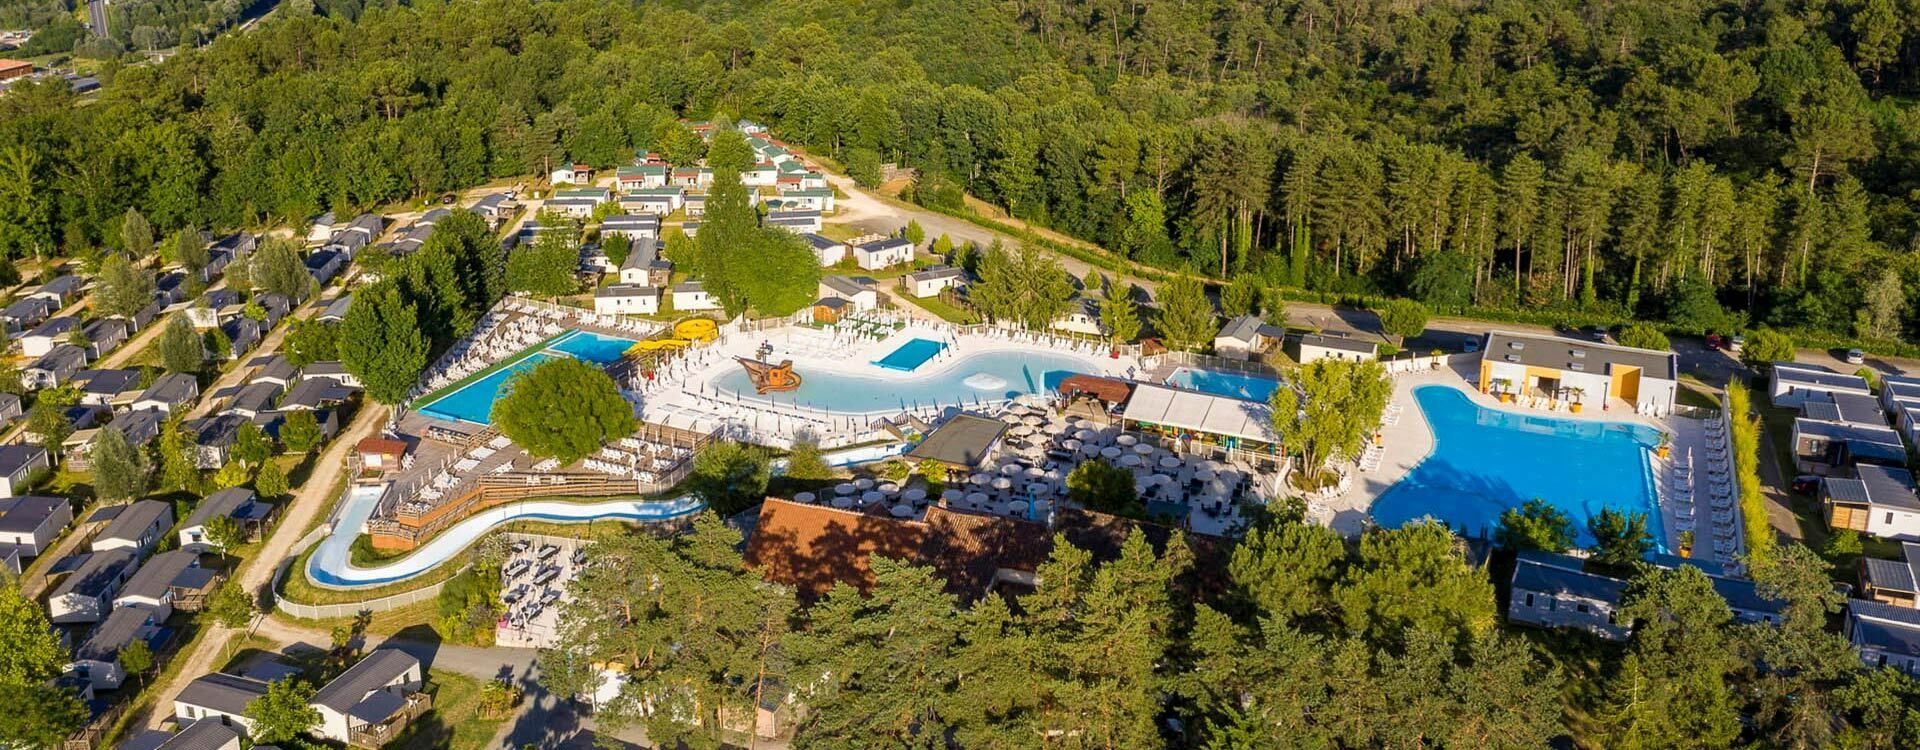 Campsite Le Grand Dague